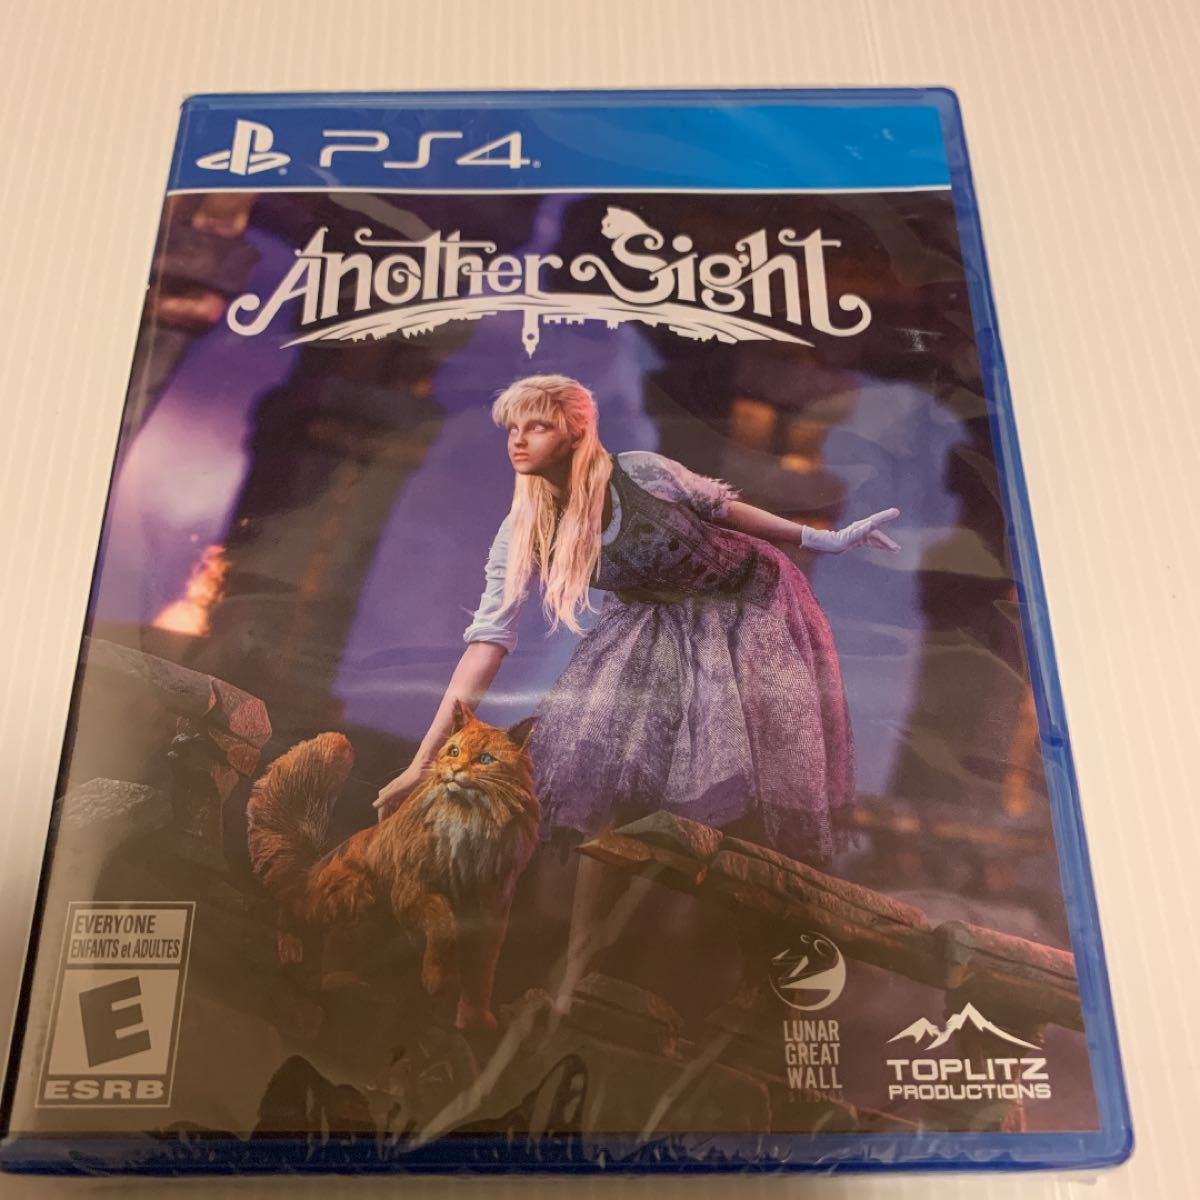 Another Sight ps4 ソフト 北米版 新品未開封